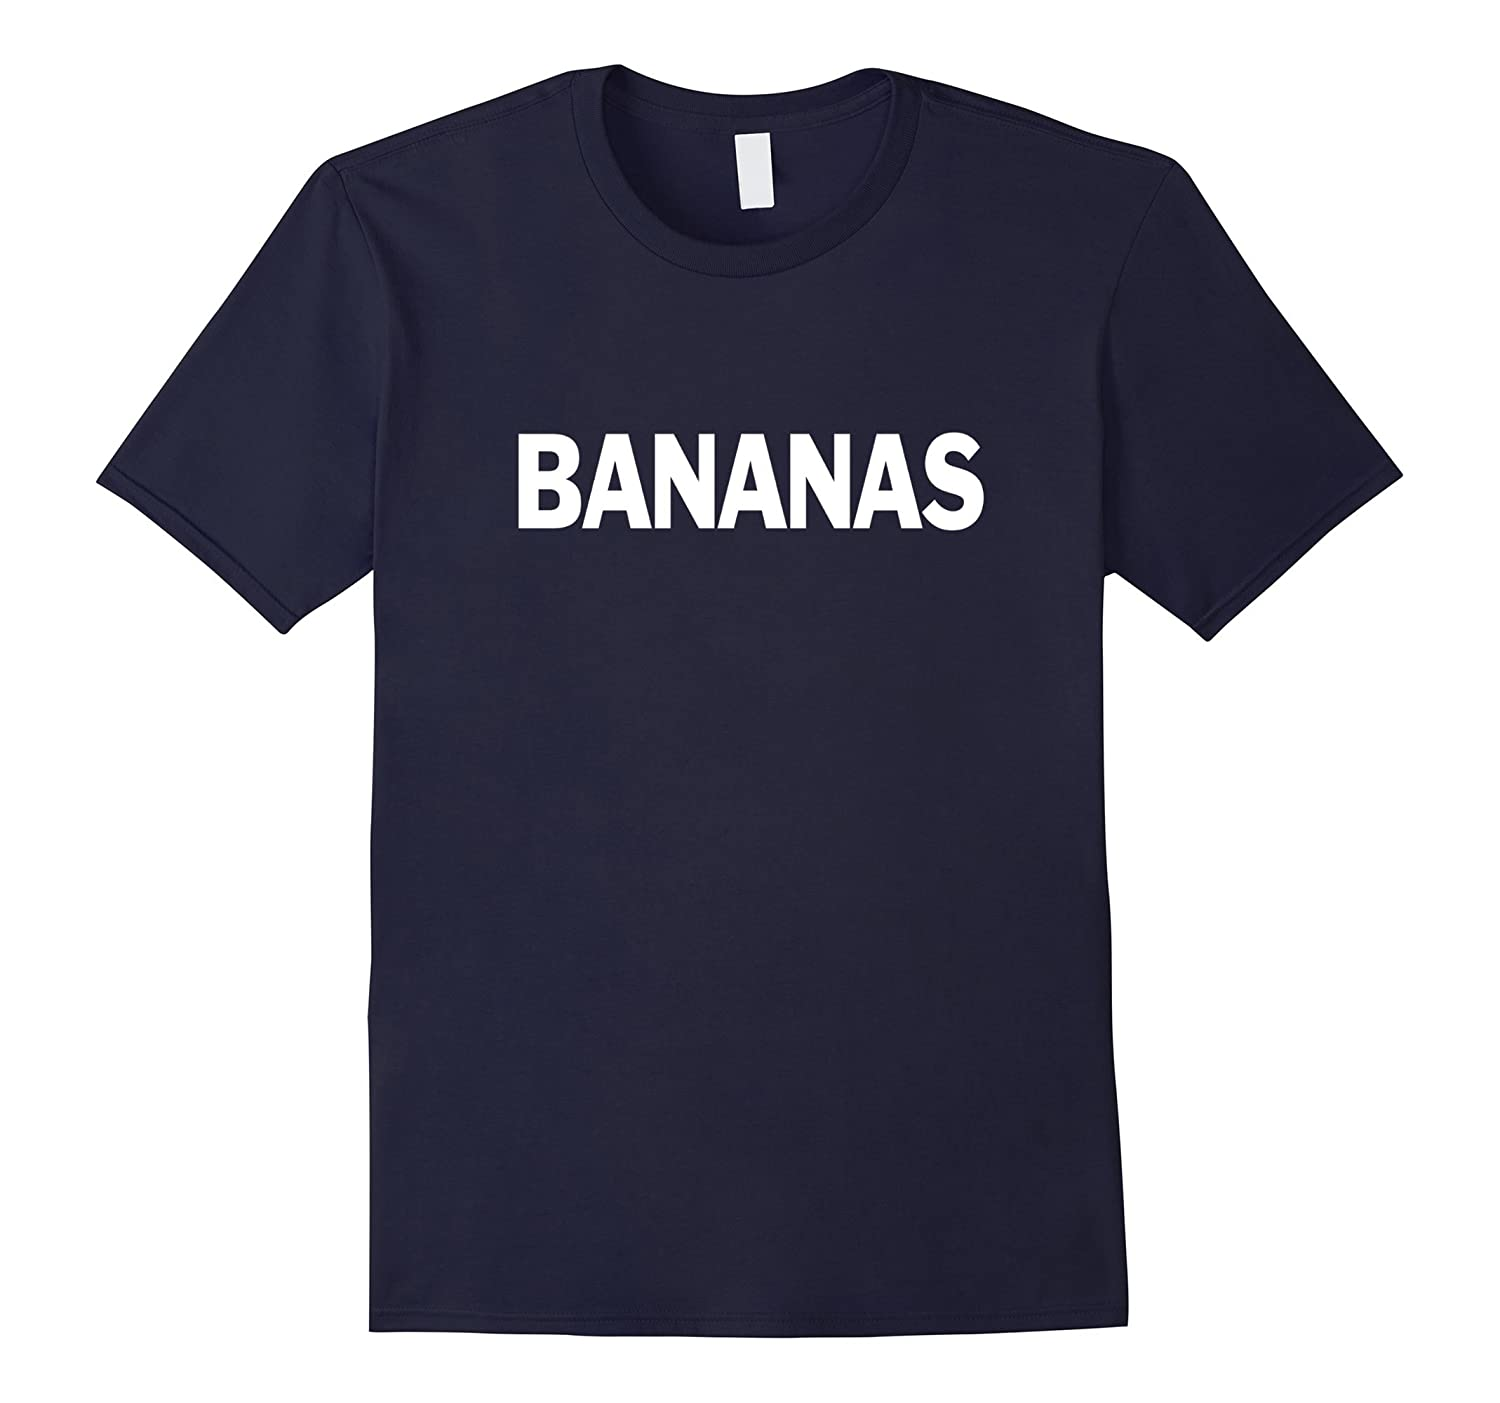 Bananas  Mike Dave T Shirt in Black  Colors Mens Womens-TD